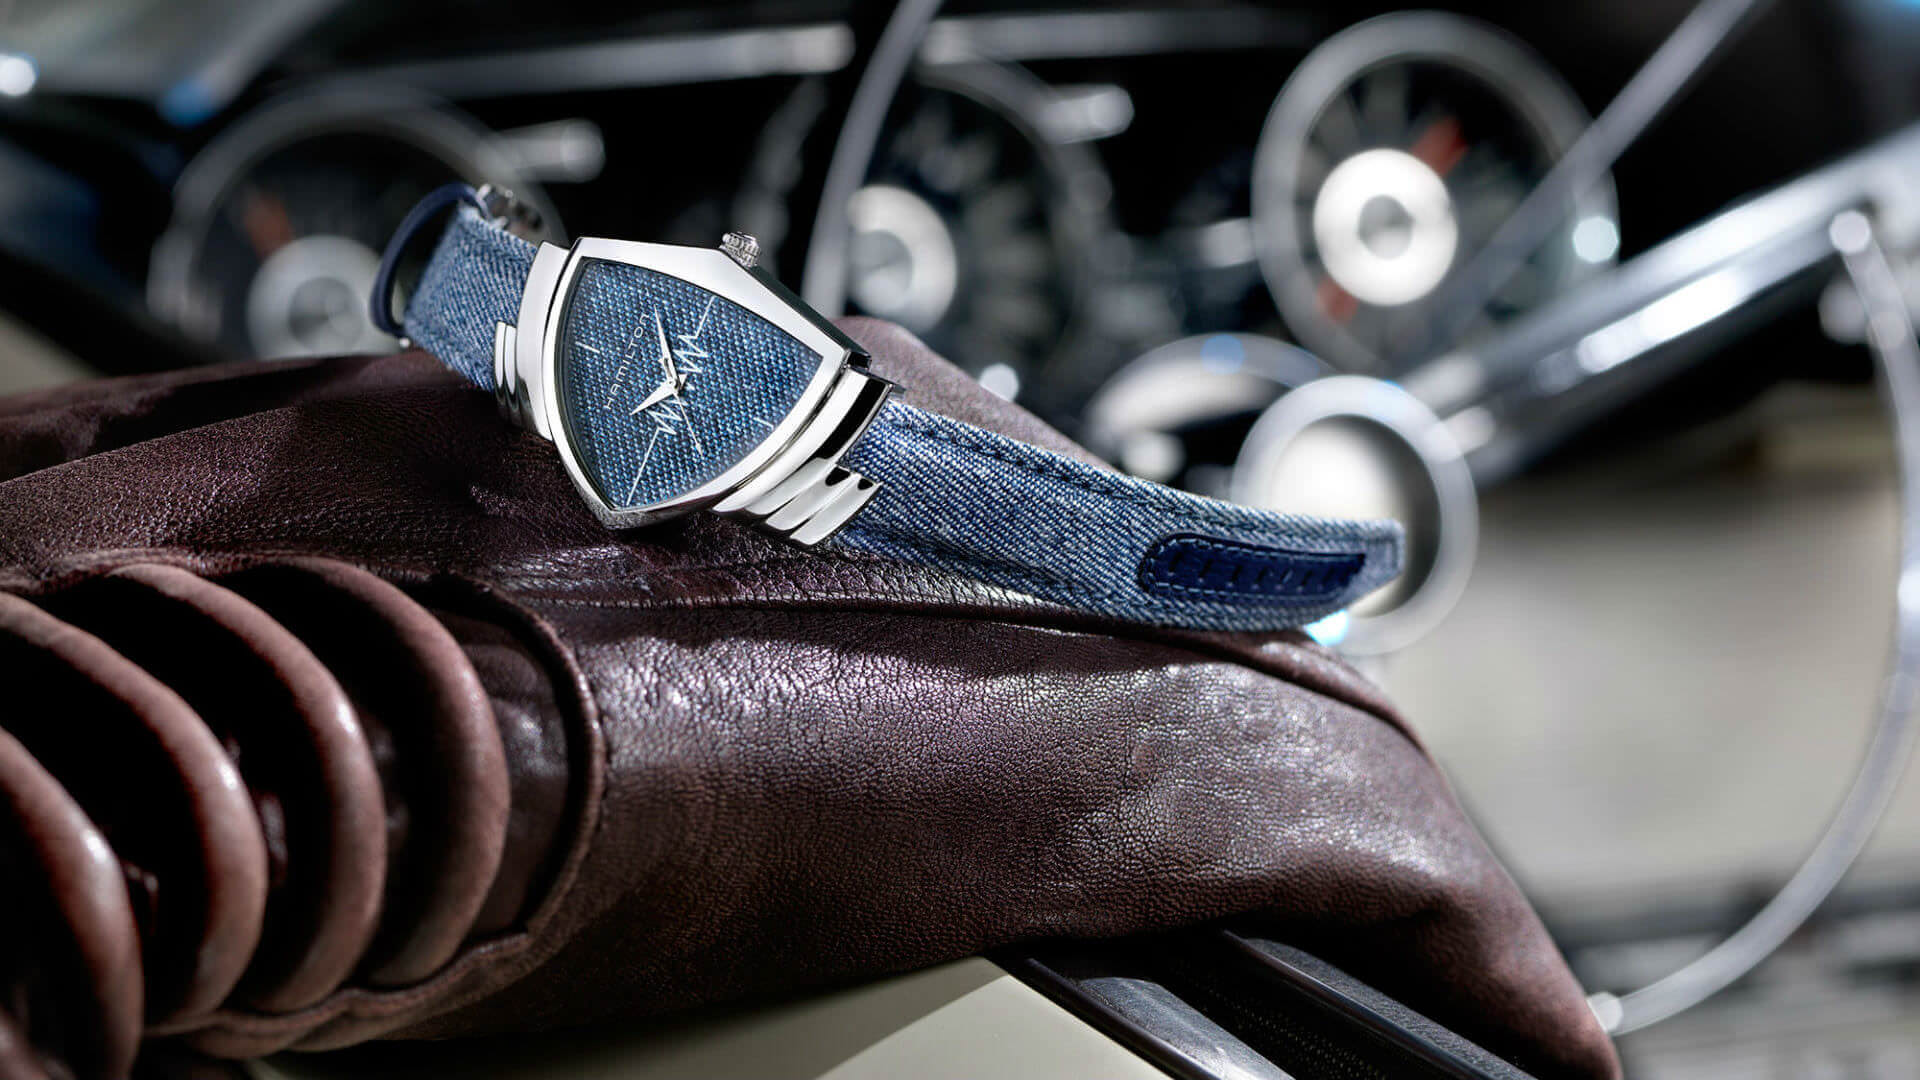 Hamilton Refreshes Ventura Watch Range with 3D Printed Dial | All3DP